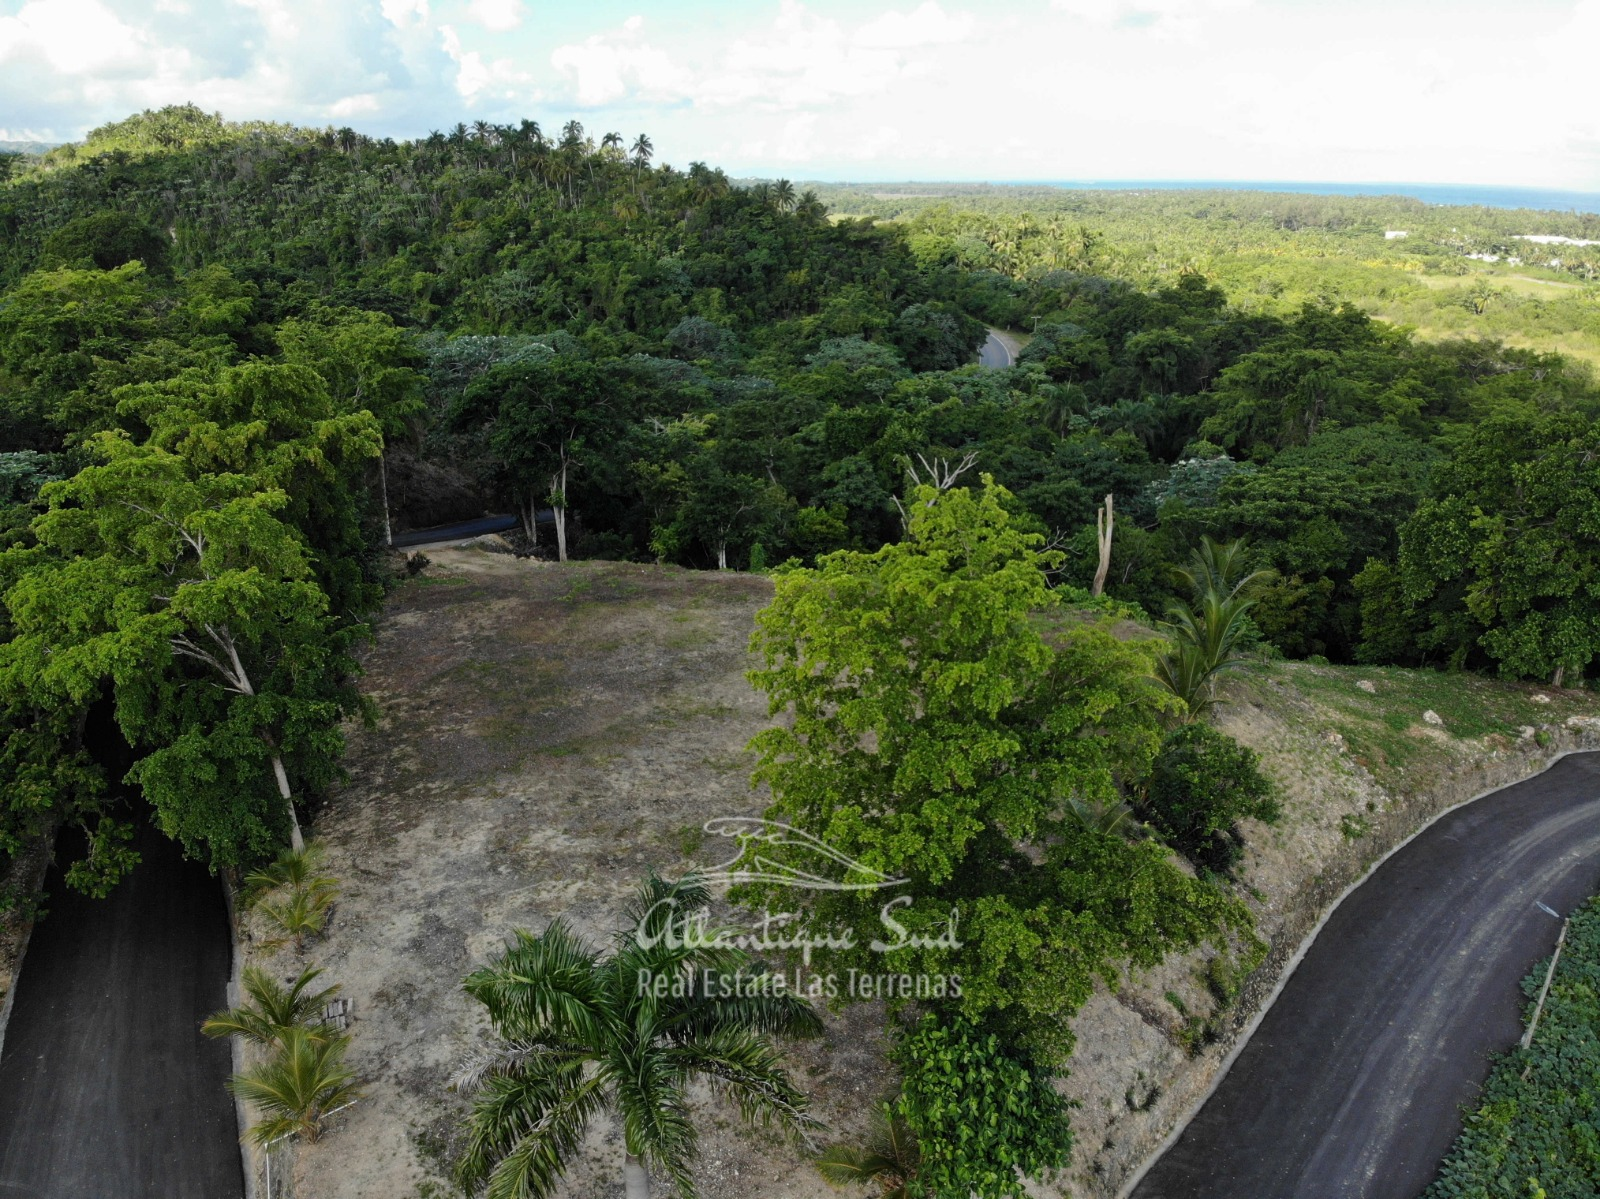 Land Lots for sale las terrenas samana4.jpeg